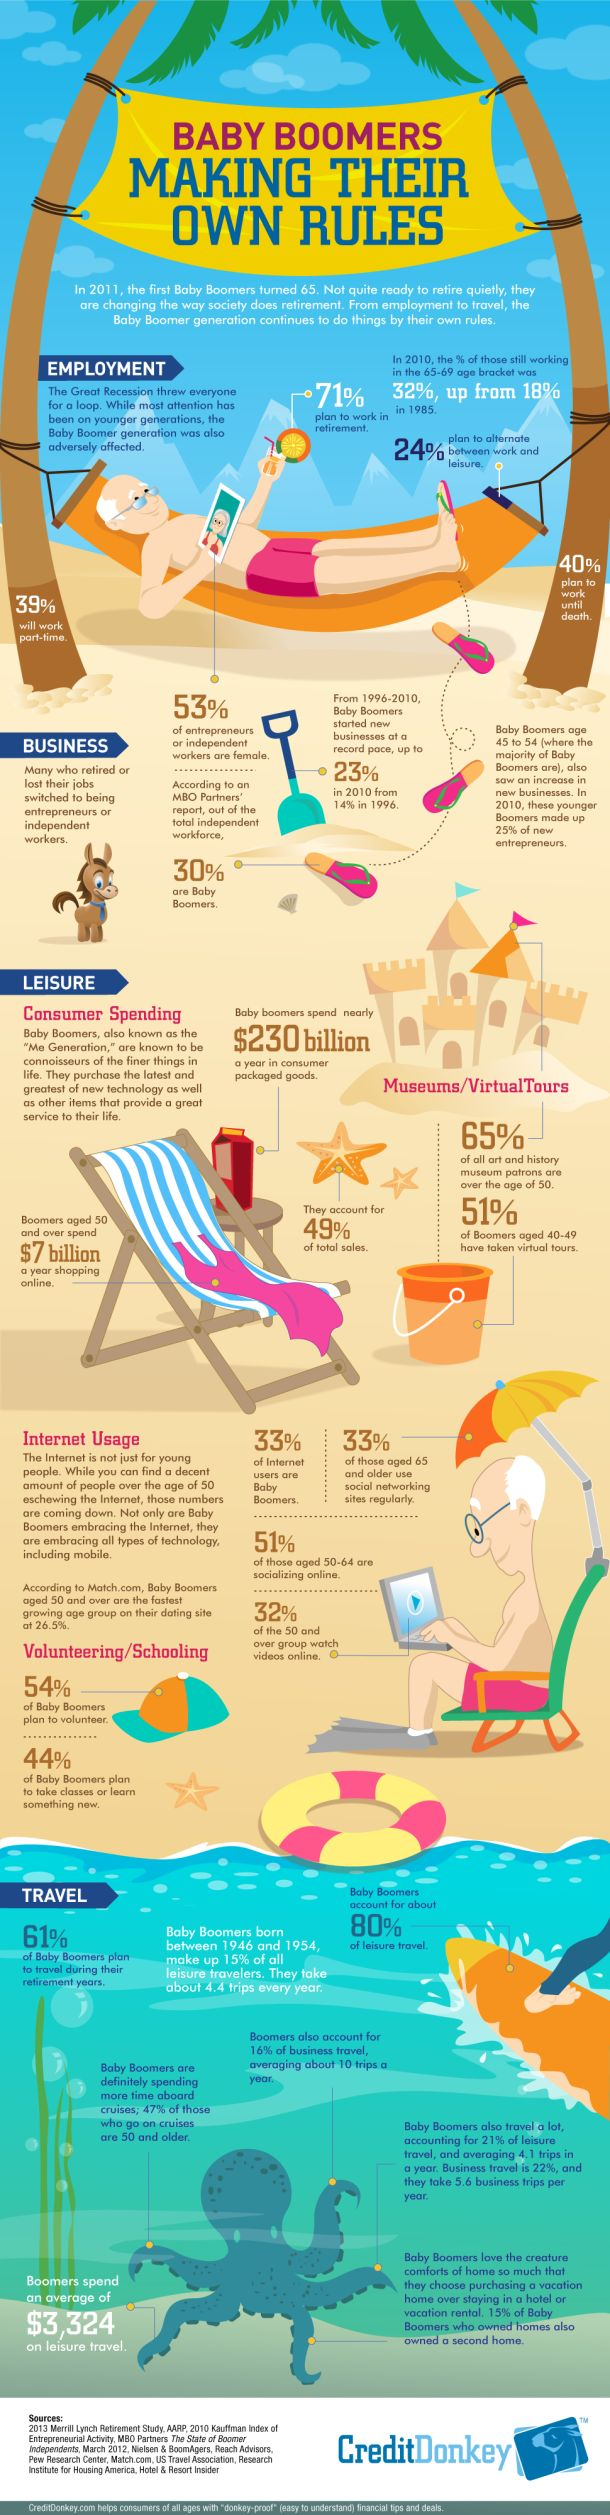 Baby Boomers Making Their Own Rules[INFOGRAPHIC]